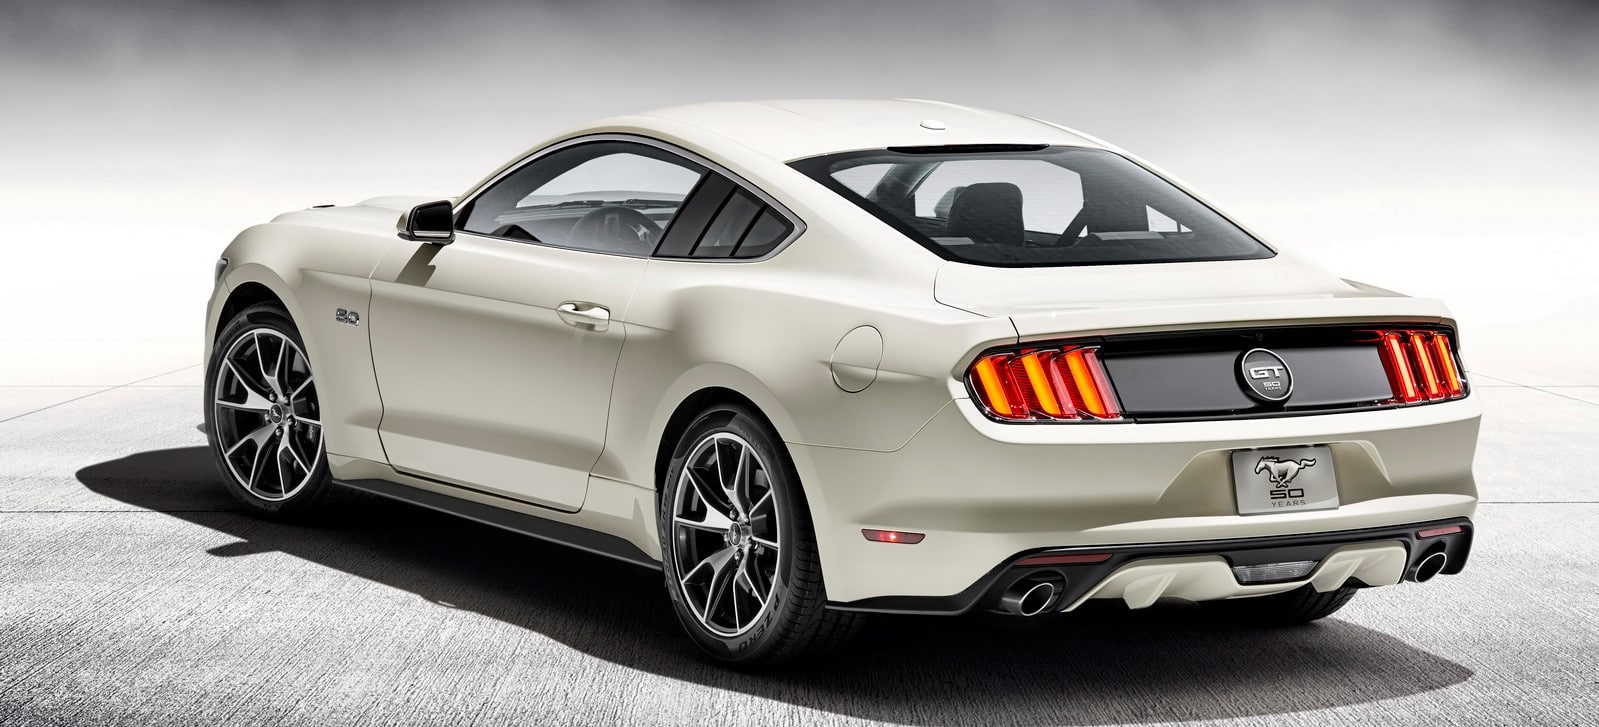 Ford Mustang Gt >> Ford Mustang Gt 5 0